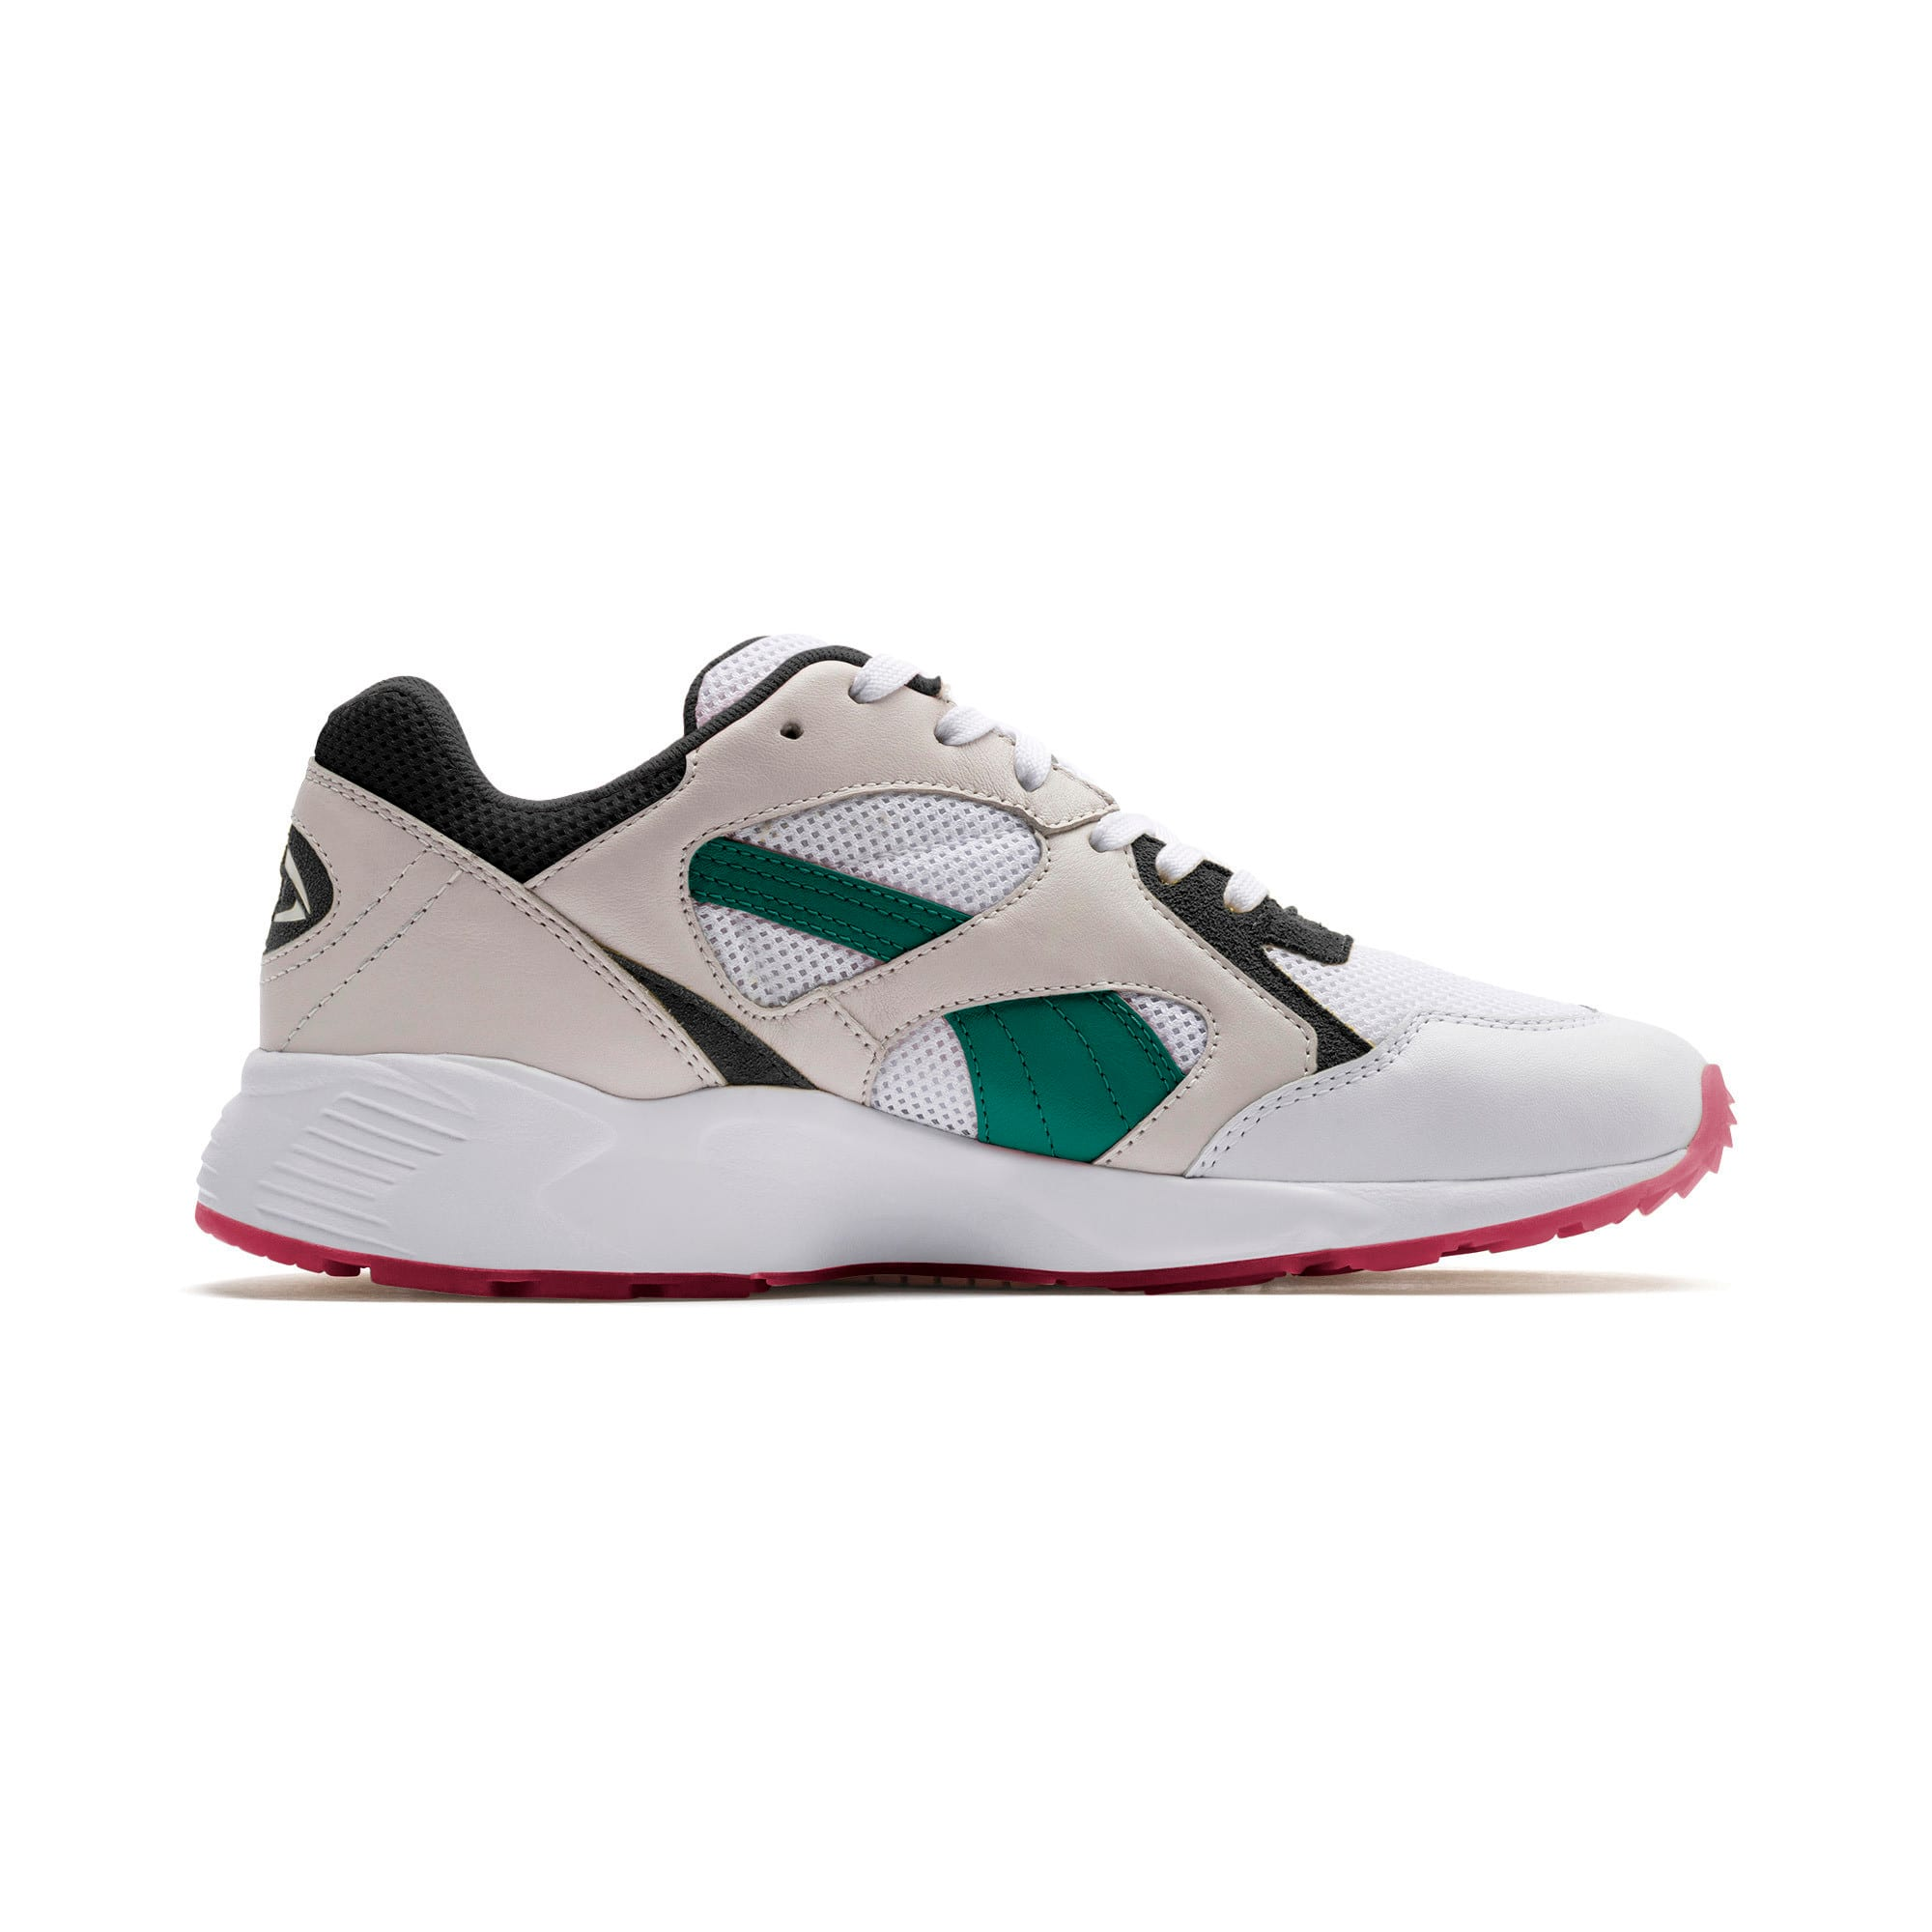 Thumbnail 5 of Prevail Classic Trainers, Puma White-Teal Green, medium